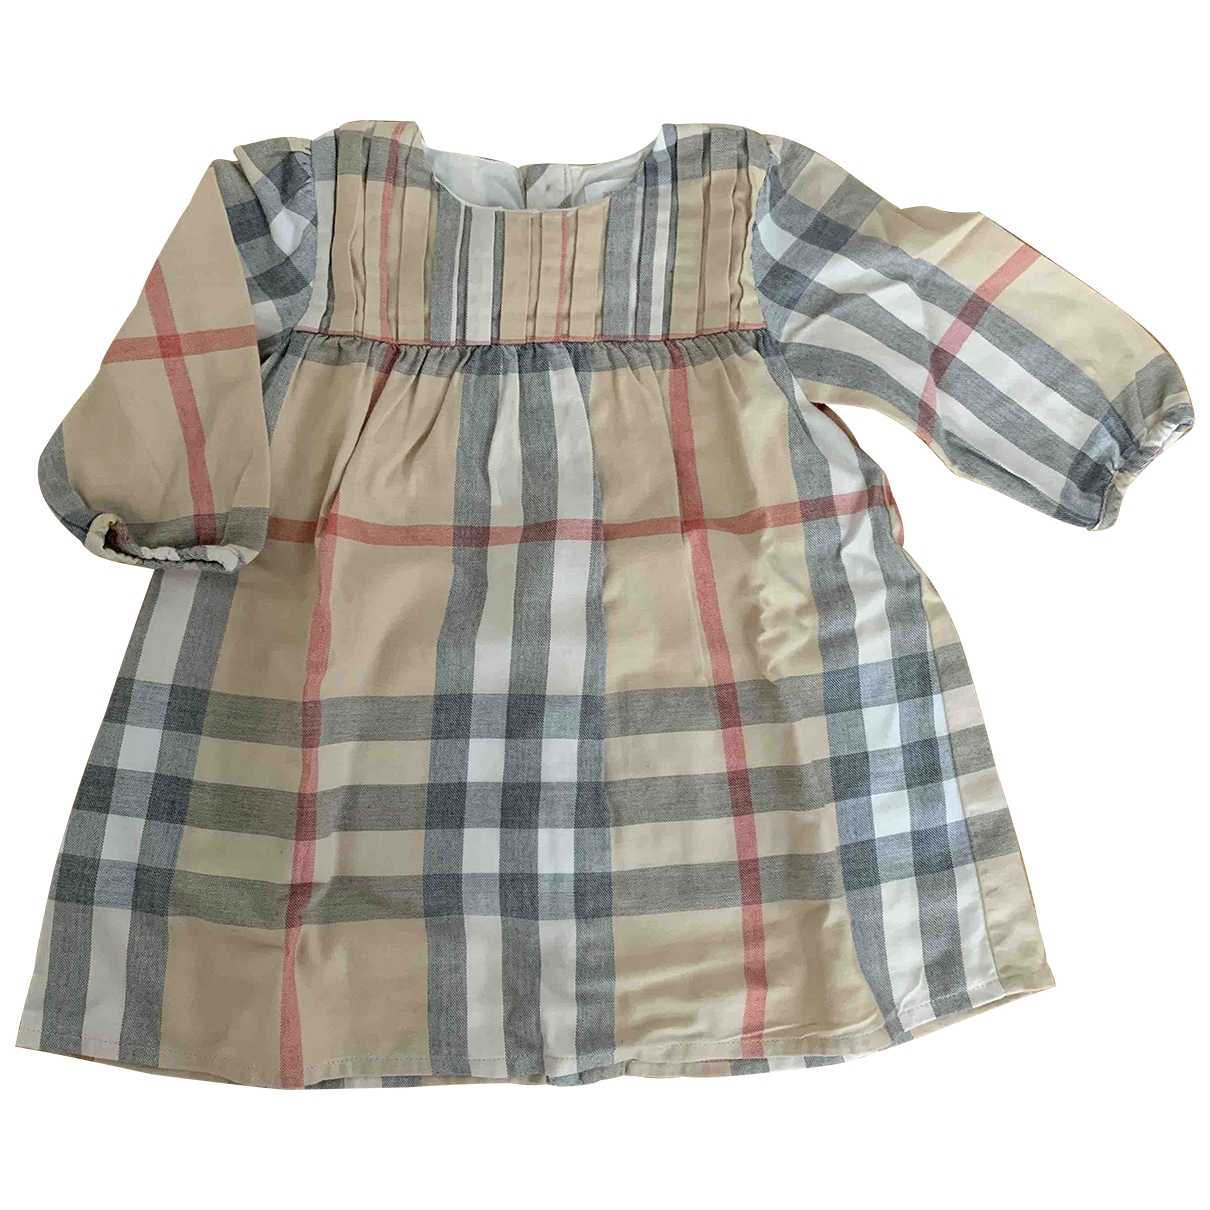 Burberry \N Beige Cotton dress for Kids 12 months - until 29 inches UK